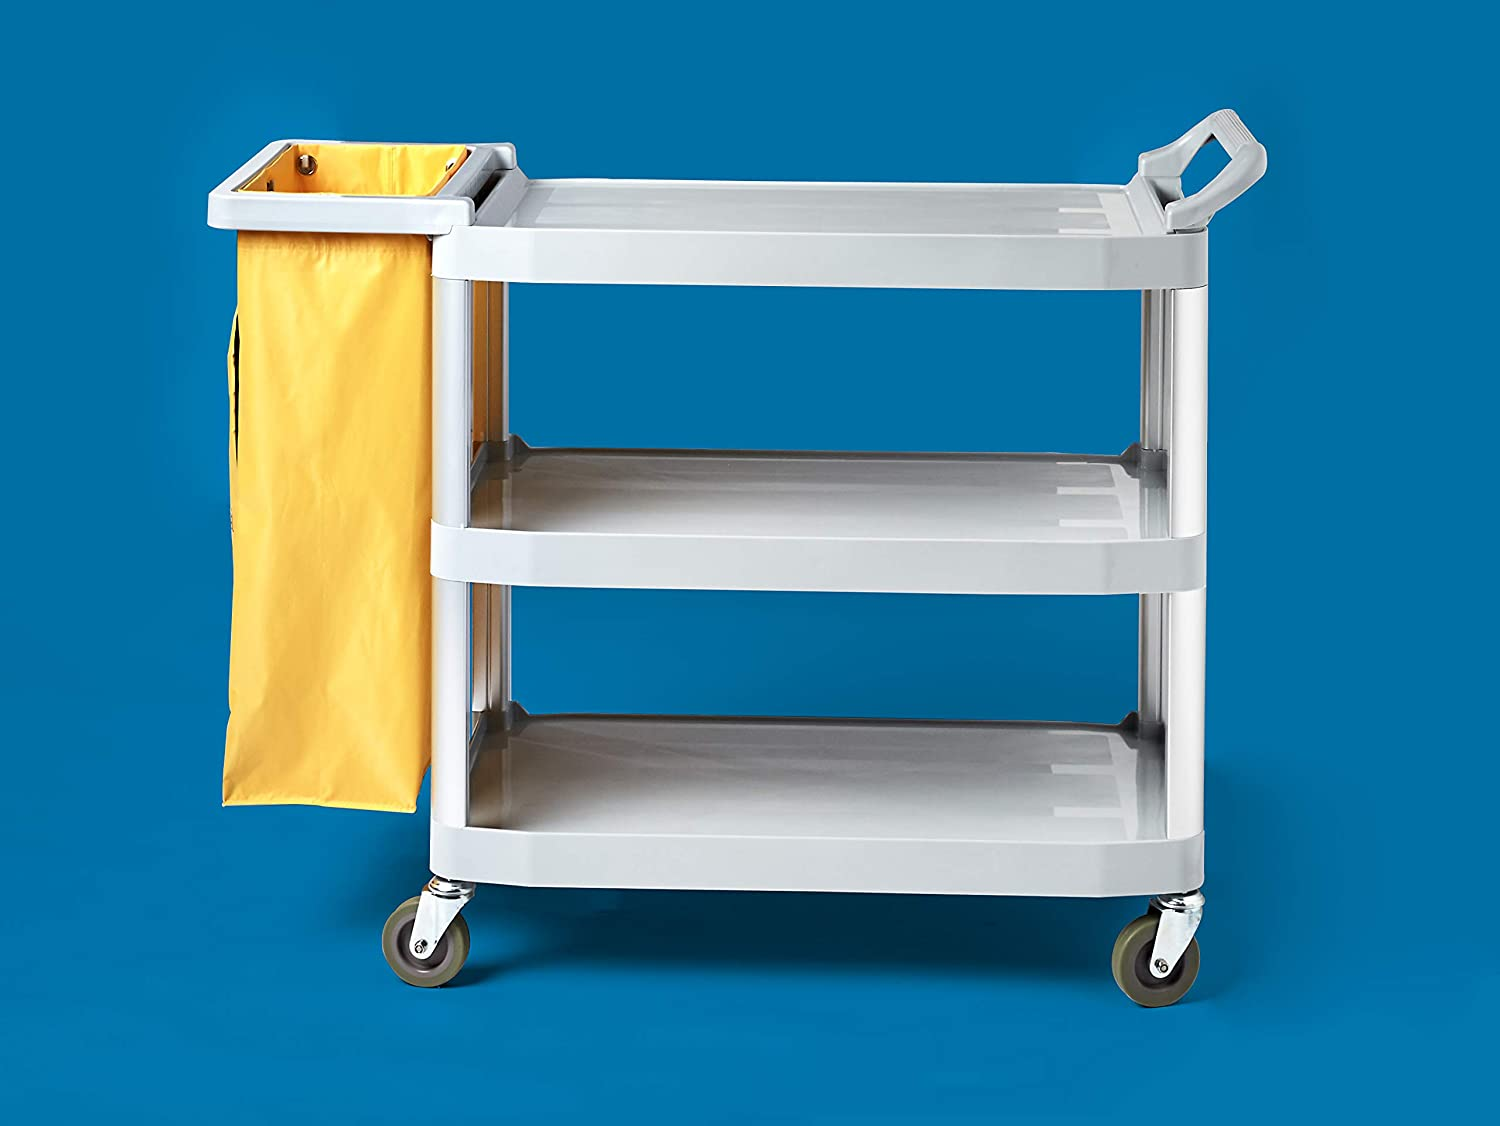 Commercial Cleaning Cart with Zipper Bag and 2 Shelves